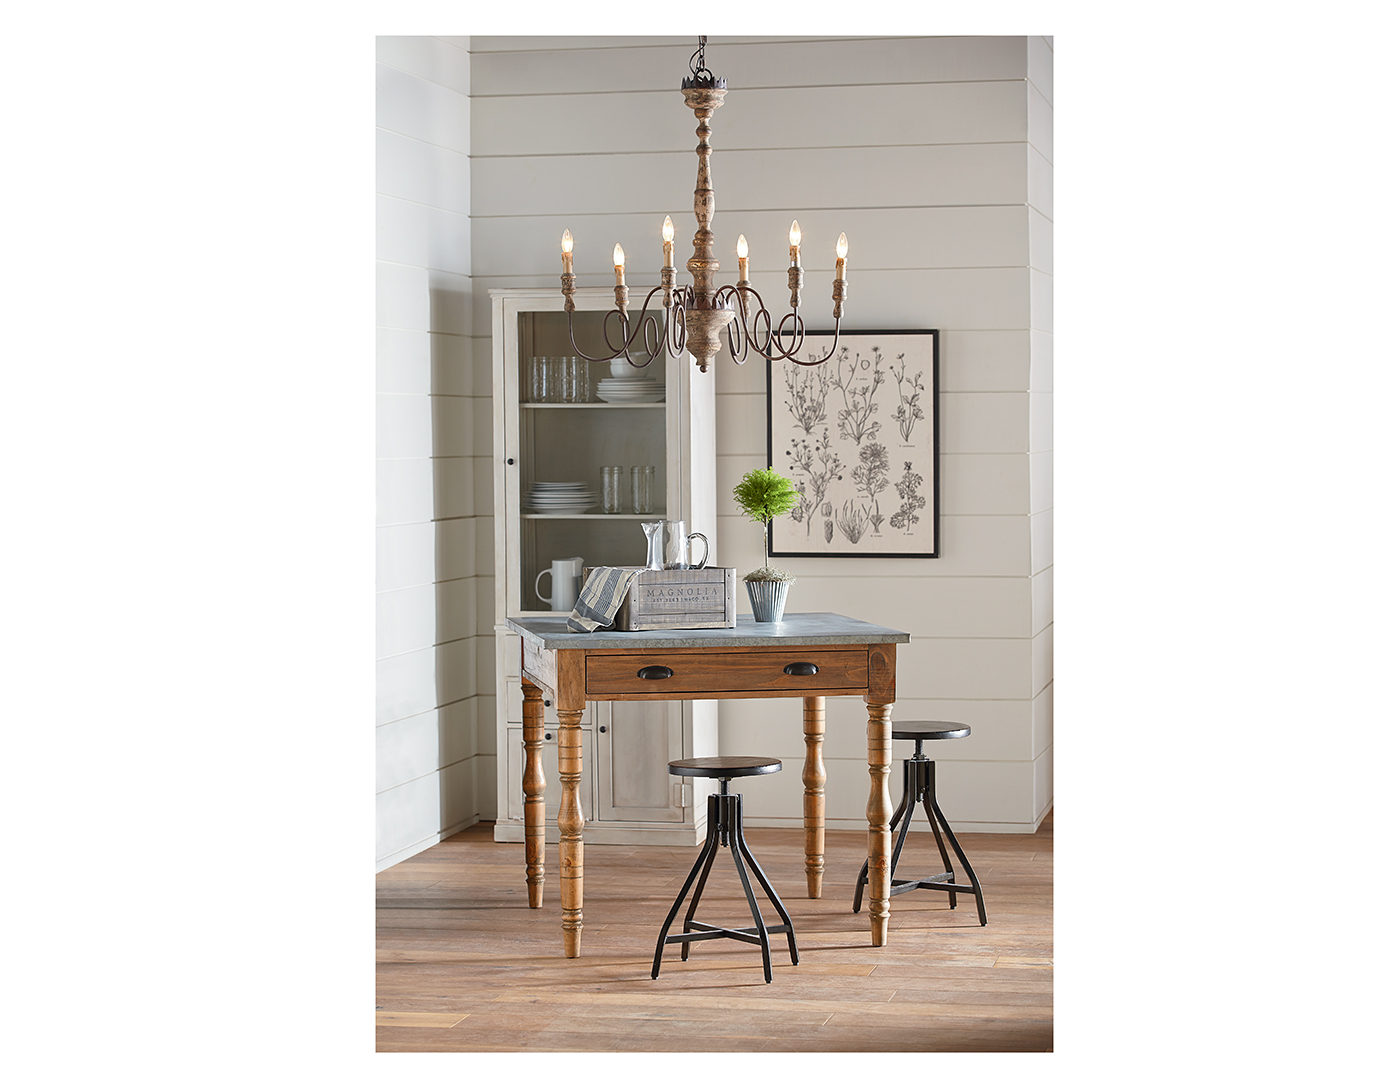 Magnolia Home 3-pc. Dining Set